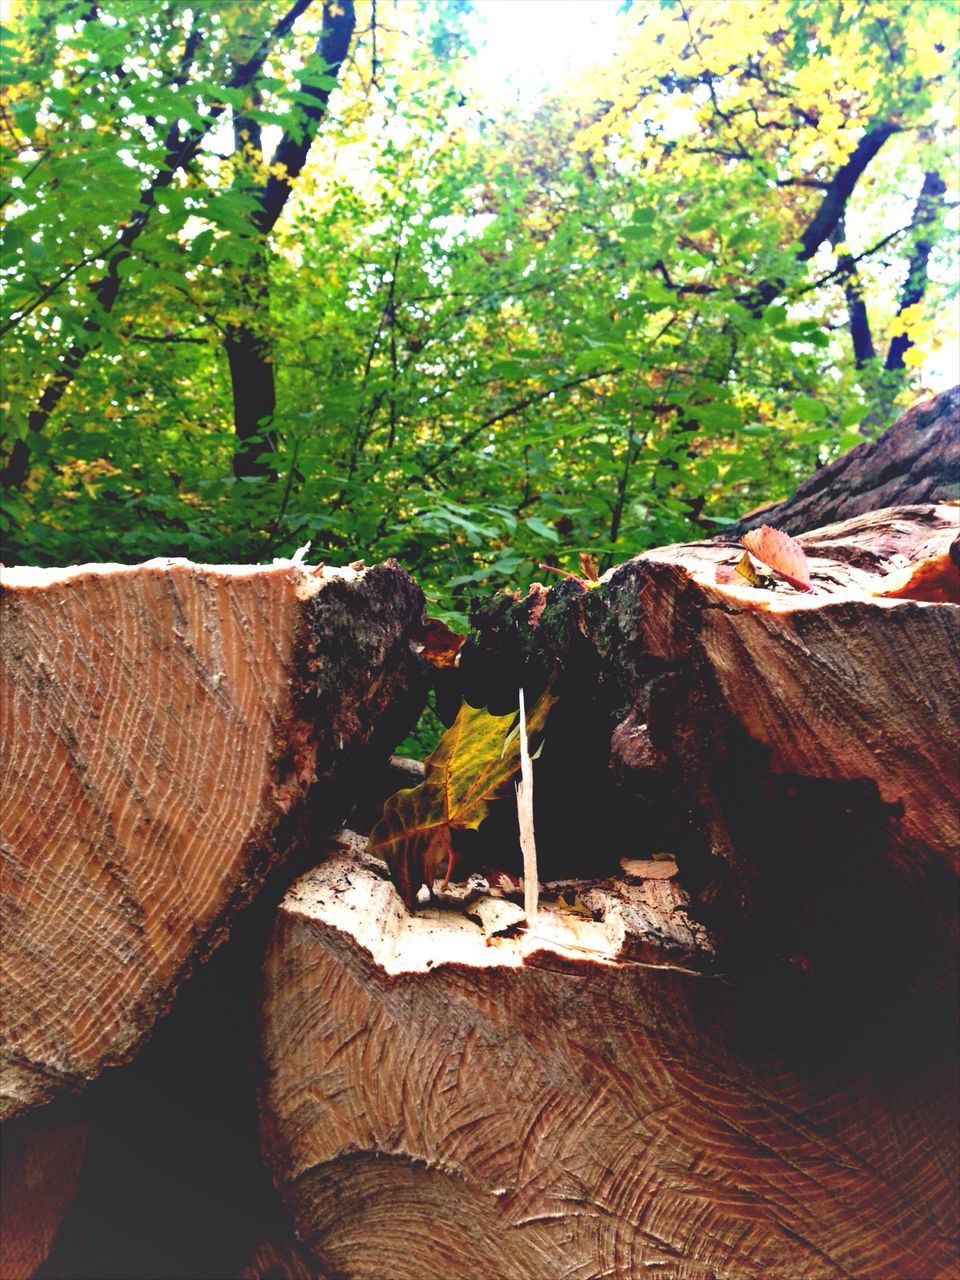 tree, nature, log, wood - material, deforestation, growth, day, no people, lumber industry, timber, outdoors, tree trunk, environmental issues, tree stump, plant, branch, beauty in nature, forestry industry, close-up